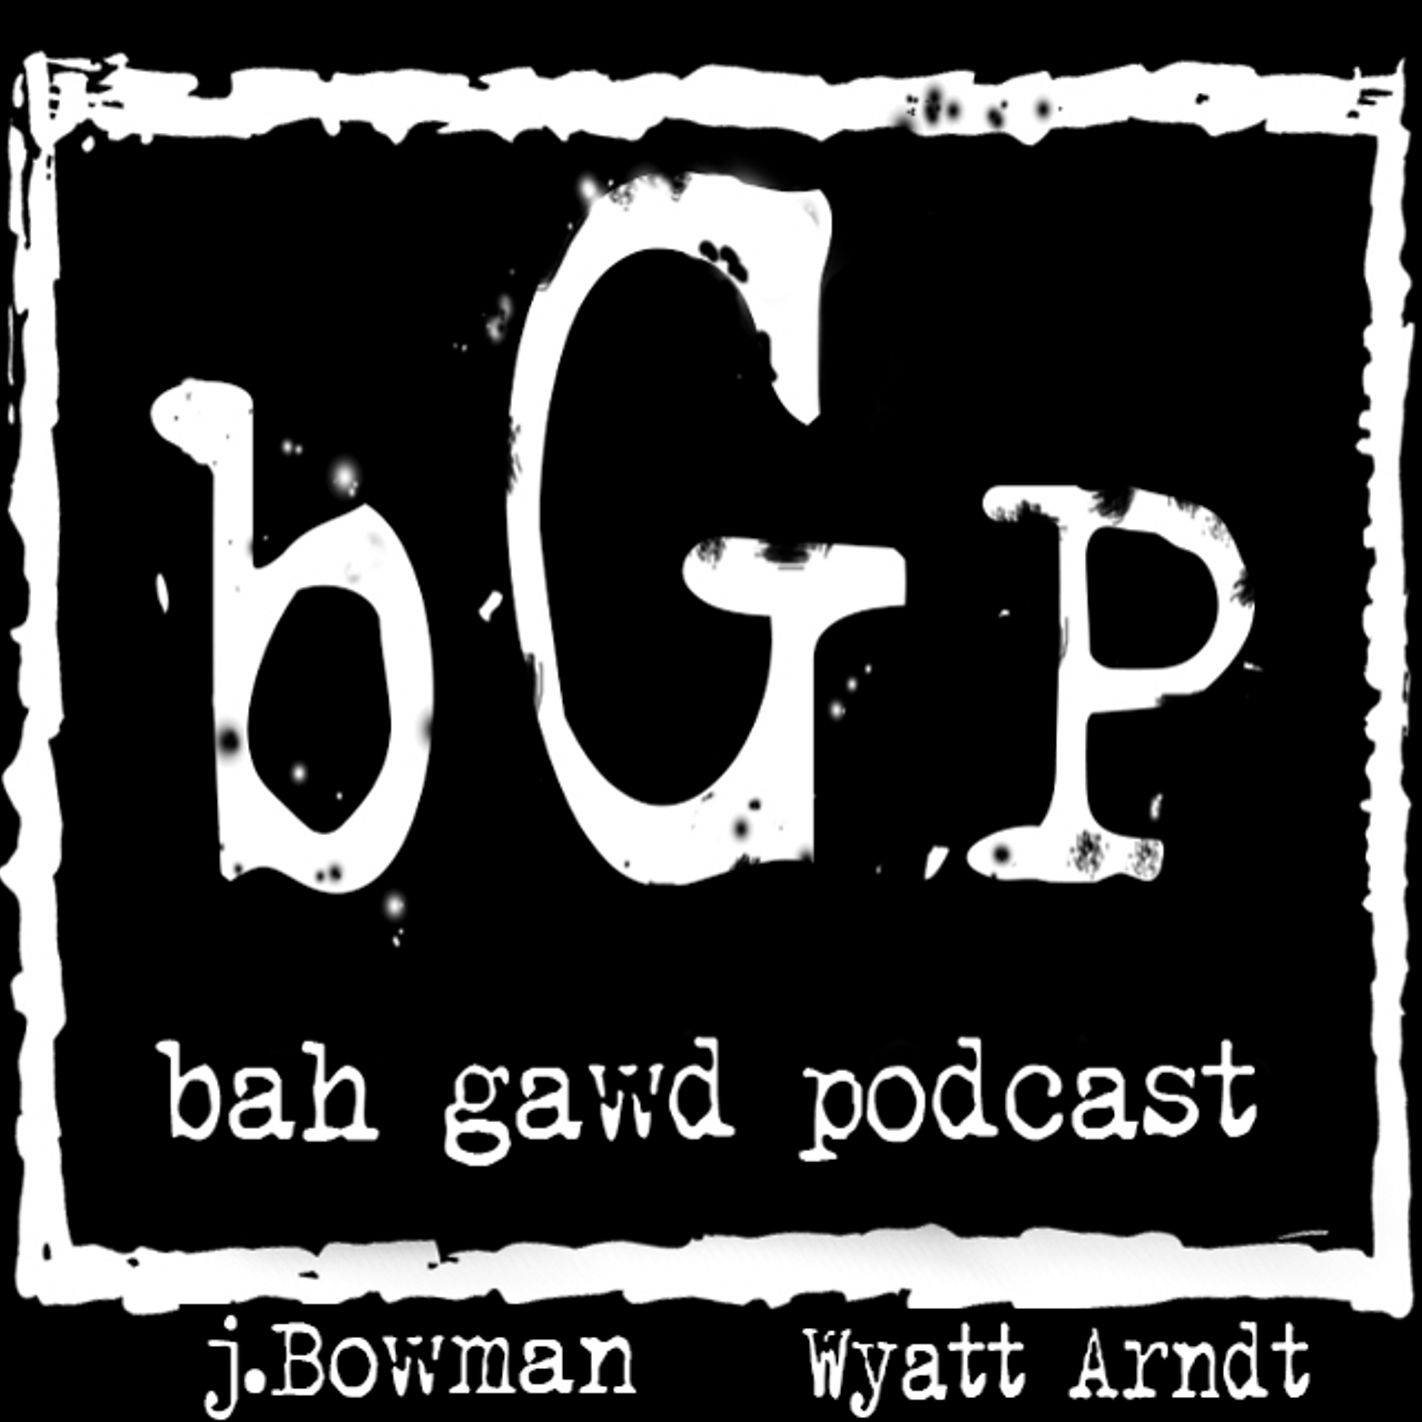 Bah Gawd Podcast!